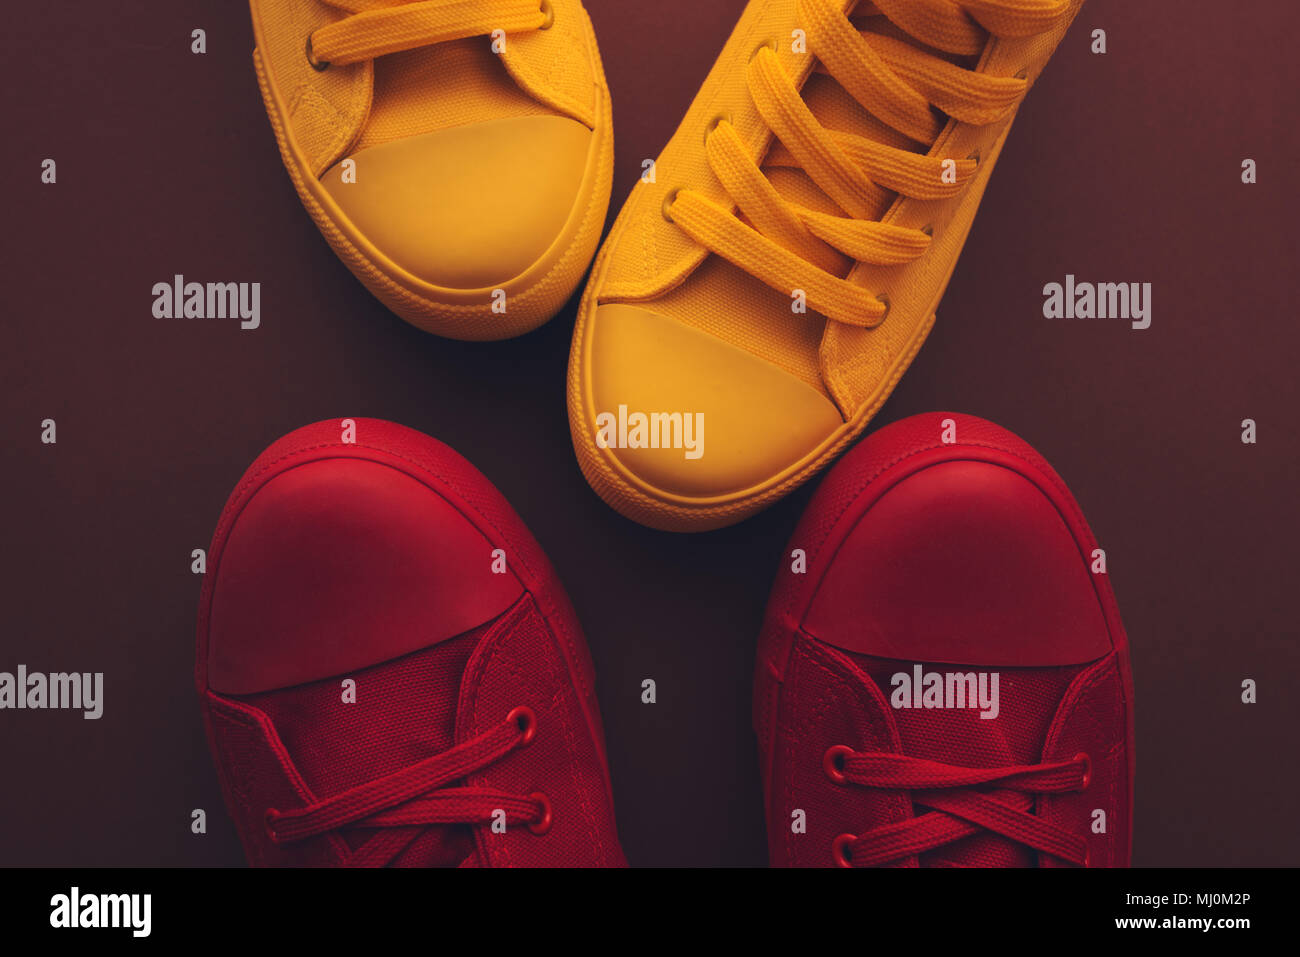 Young people on a love date, conceptual image. Top view of two pair of casual sneakers, yellow and red, from above close to and facing each other like Stock Photo